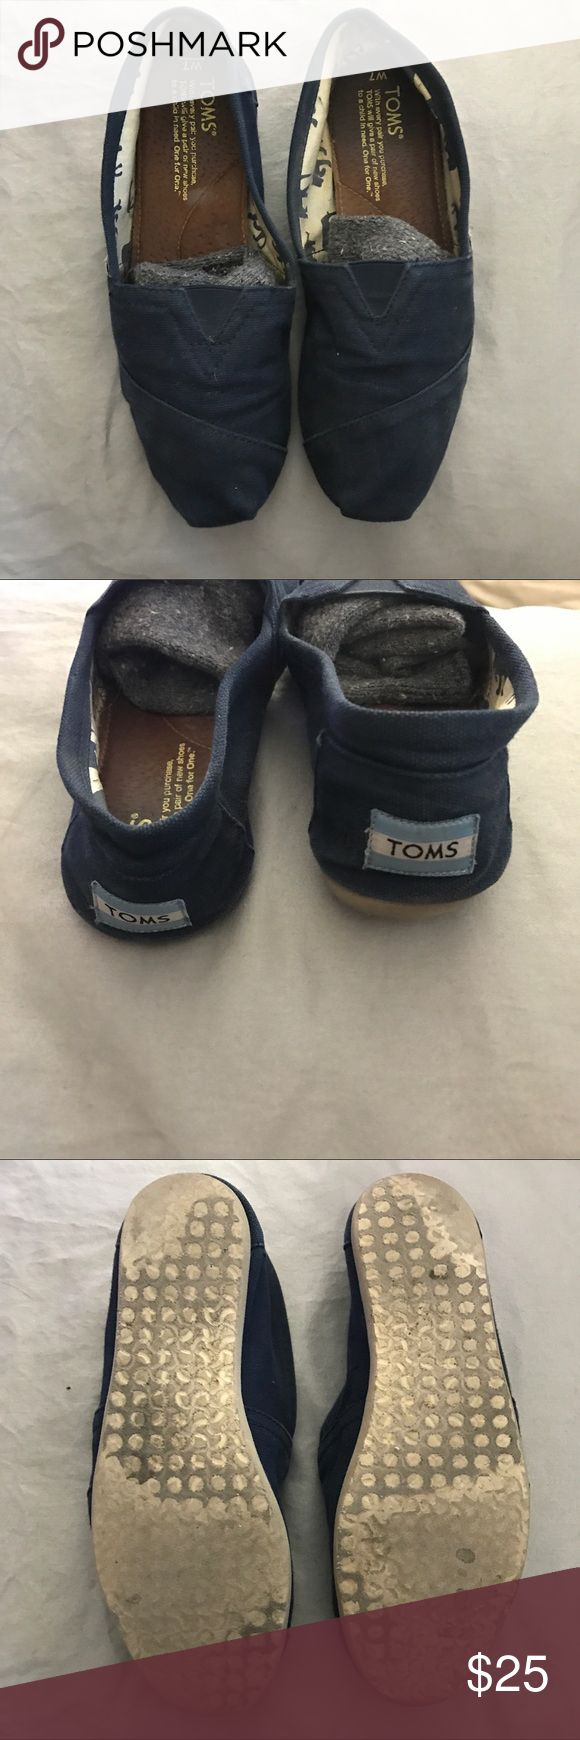 Navy blue Toms Previously loved (with care) navy blue Toms. Size 7! Condition as shown in pics above. Retail for $50. Any questions?? Feel free to ask :) Don't forget to make offers or bundle for a discount! Thanks for shopping my closet! TOMS Shoes